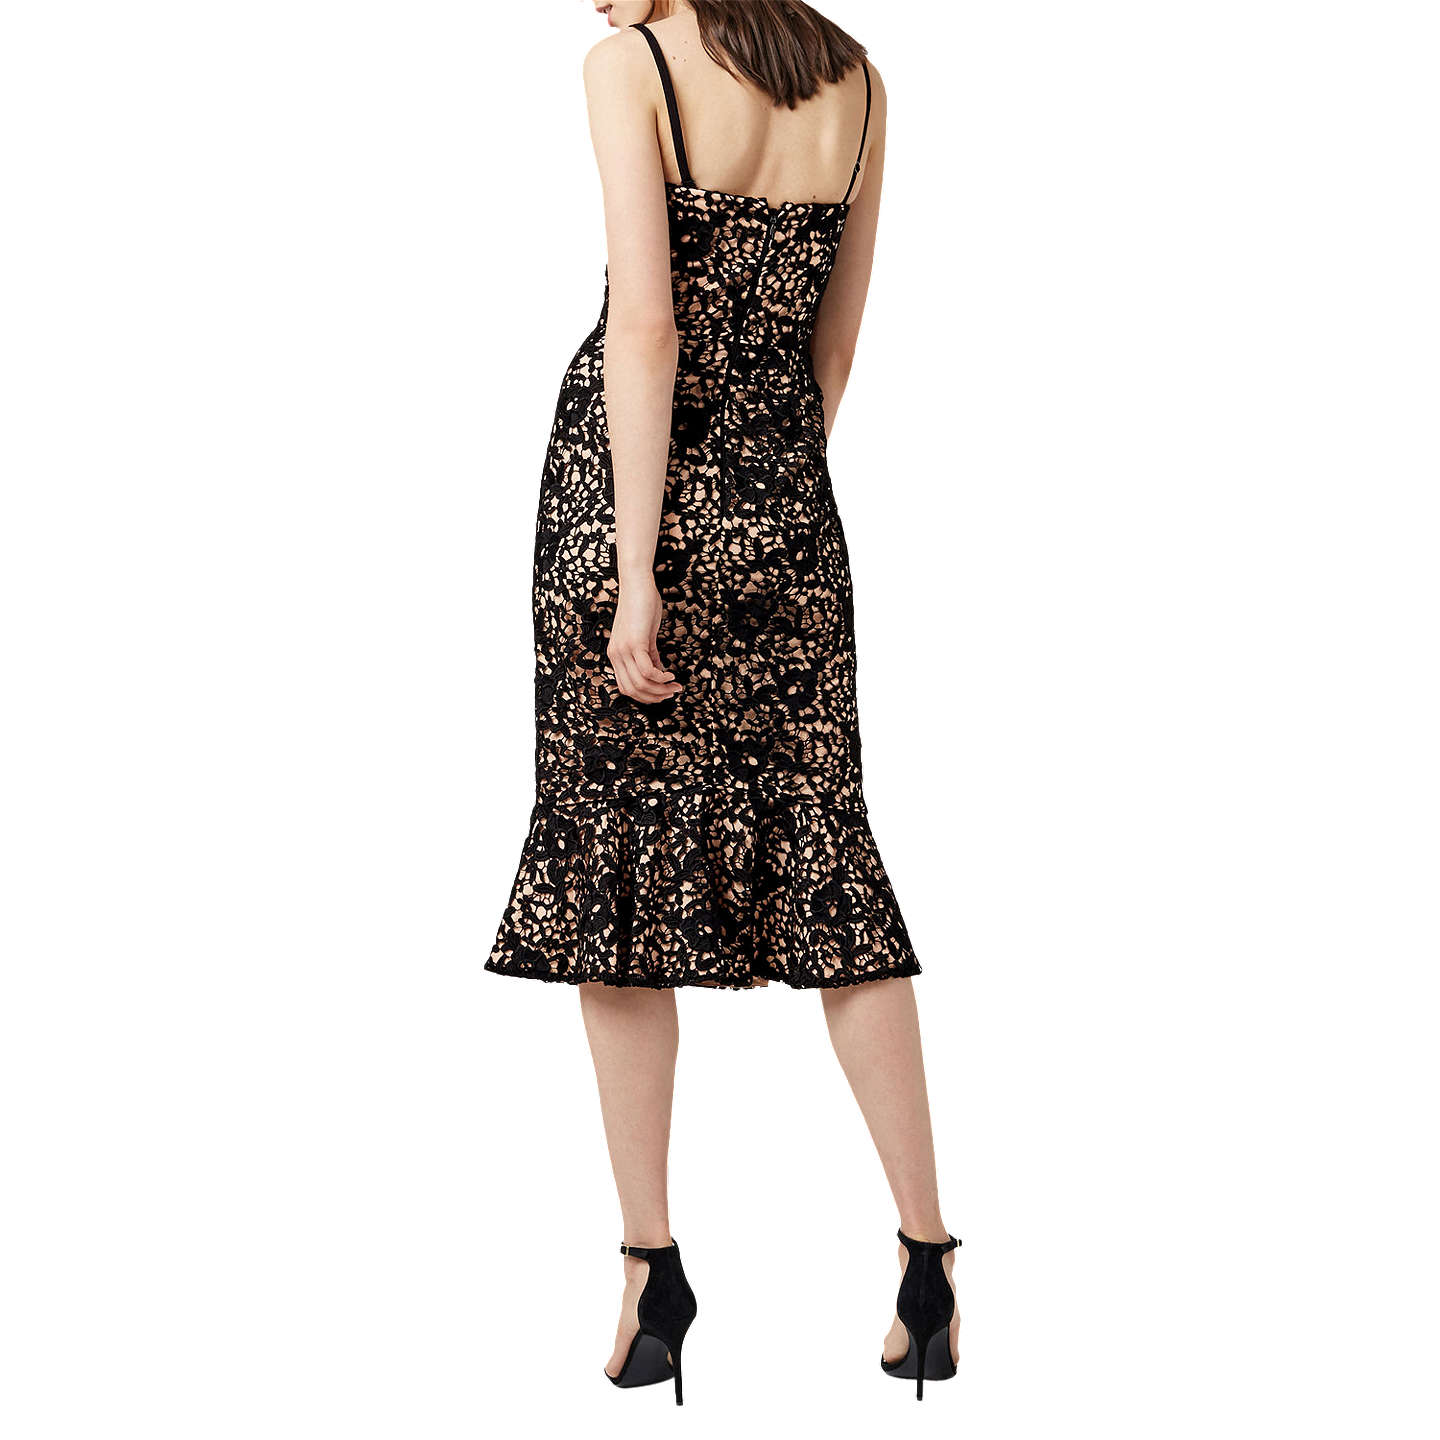 BuyWarehouse Strapless Premium Lace Dress, Black, 6 Online at johnlewis.com